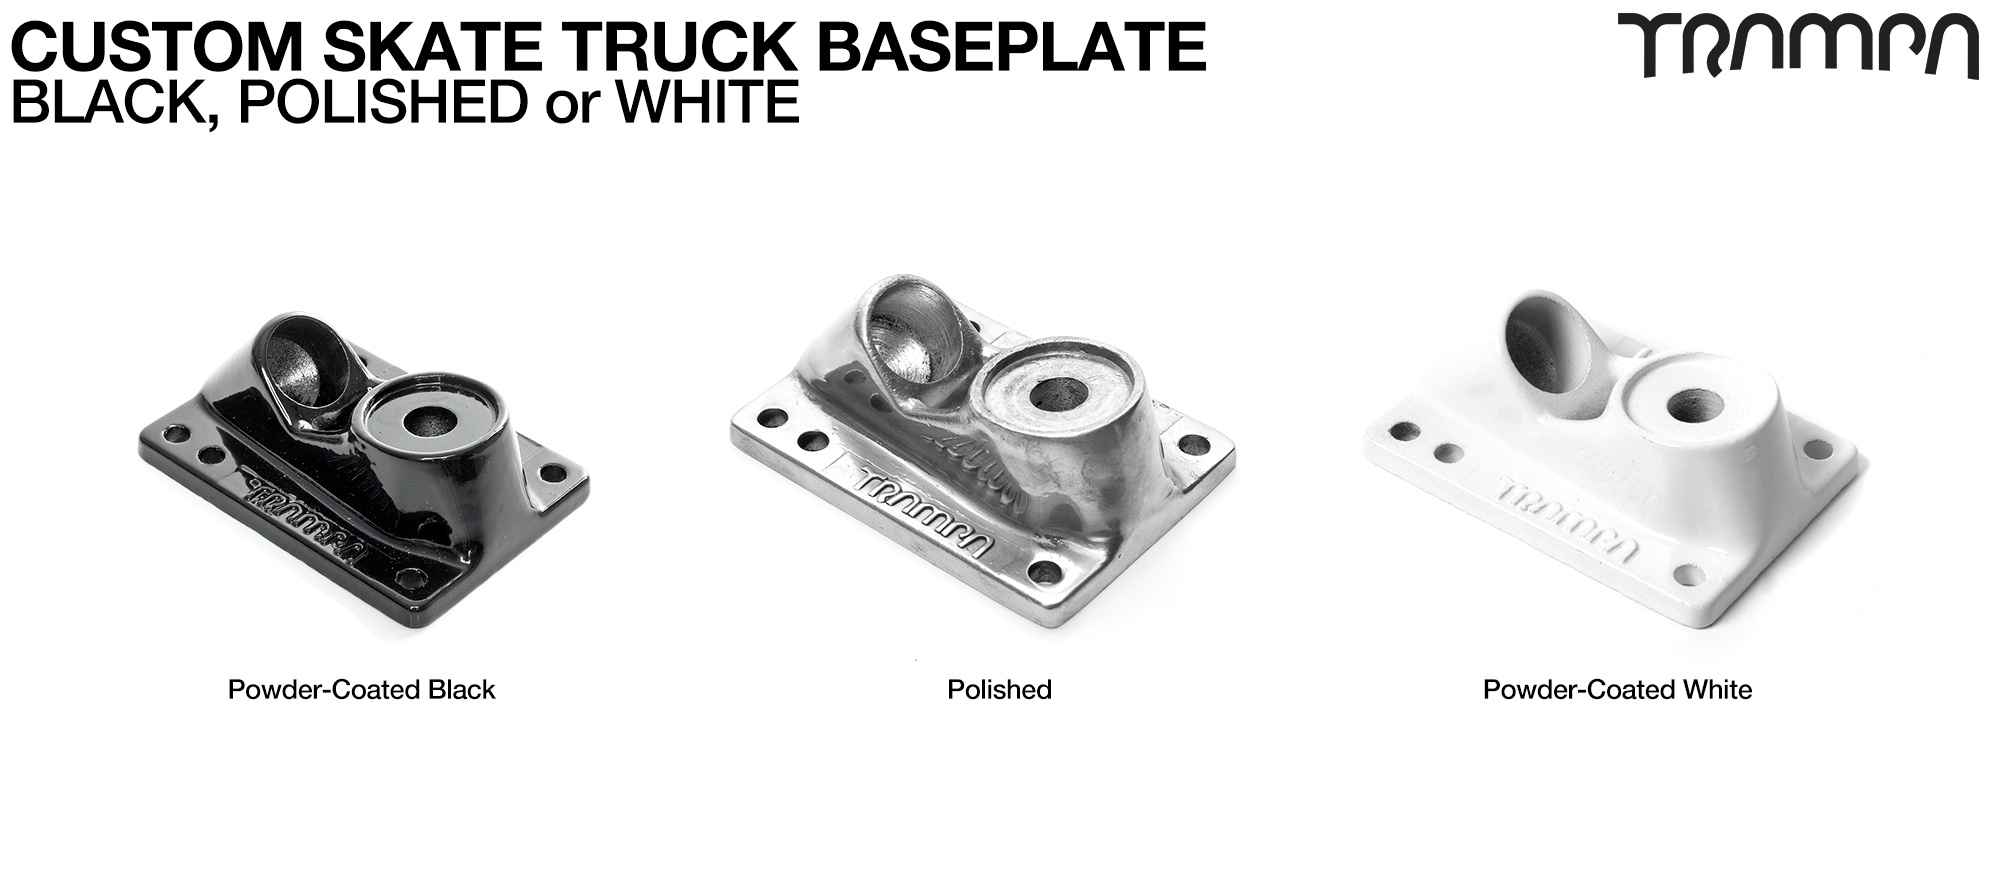 Polished Base plate for Trampa skate trucks